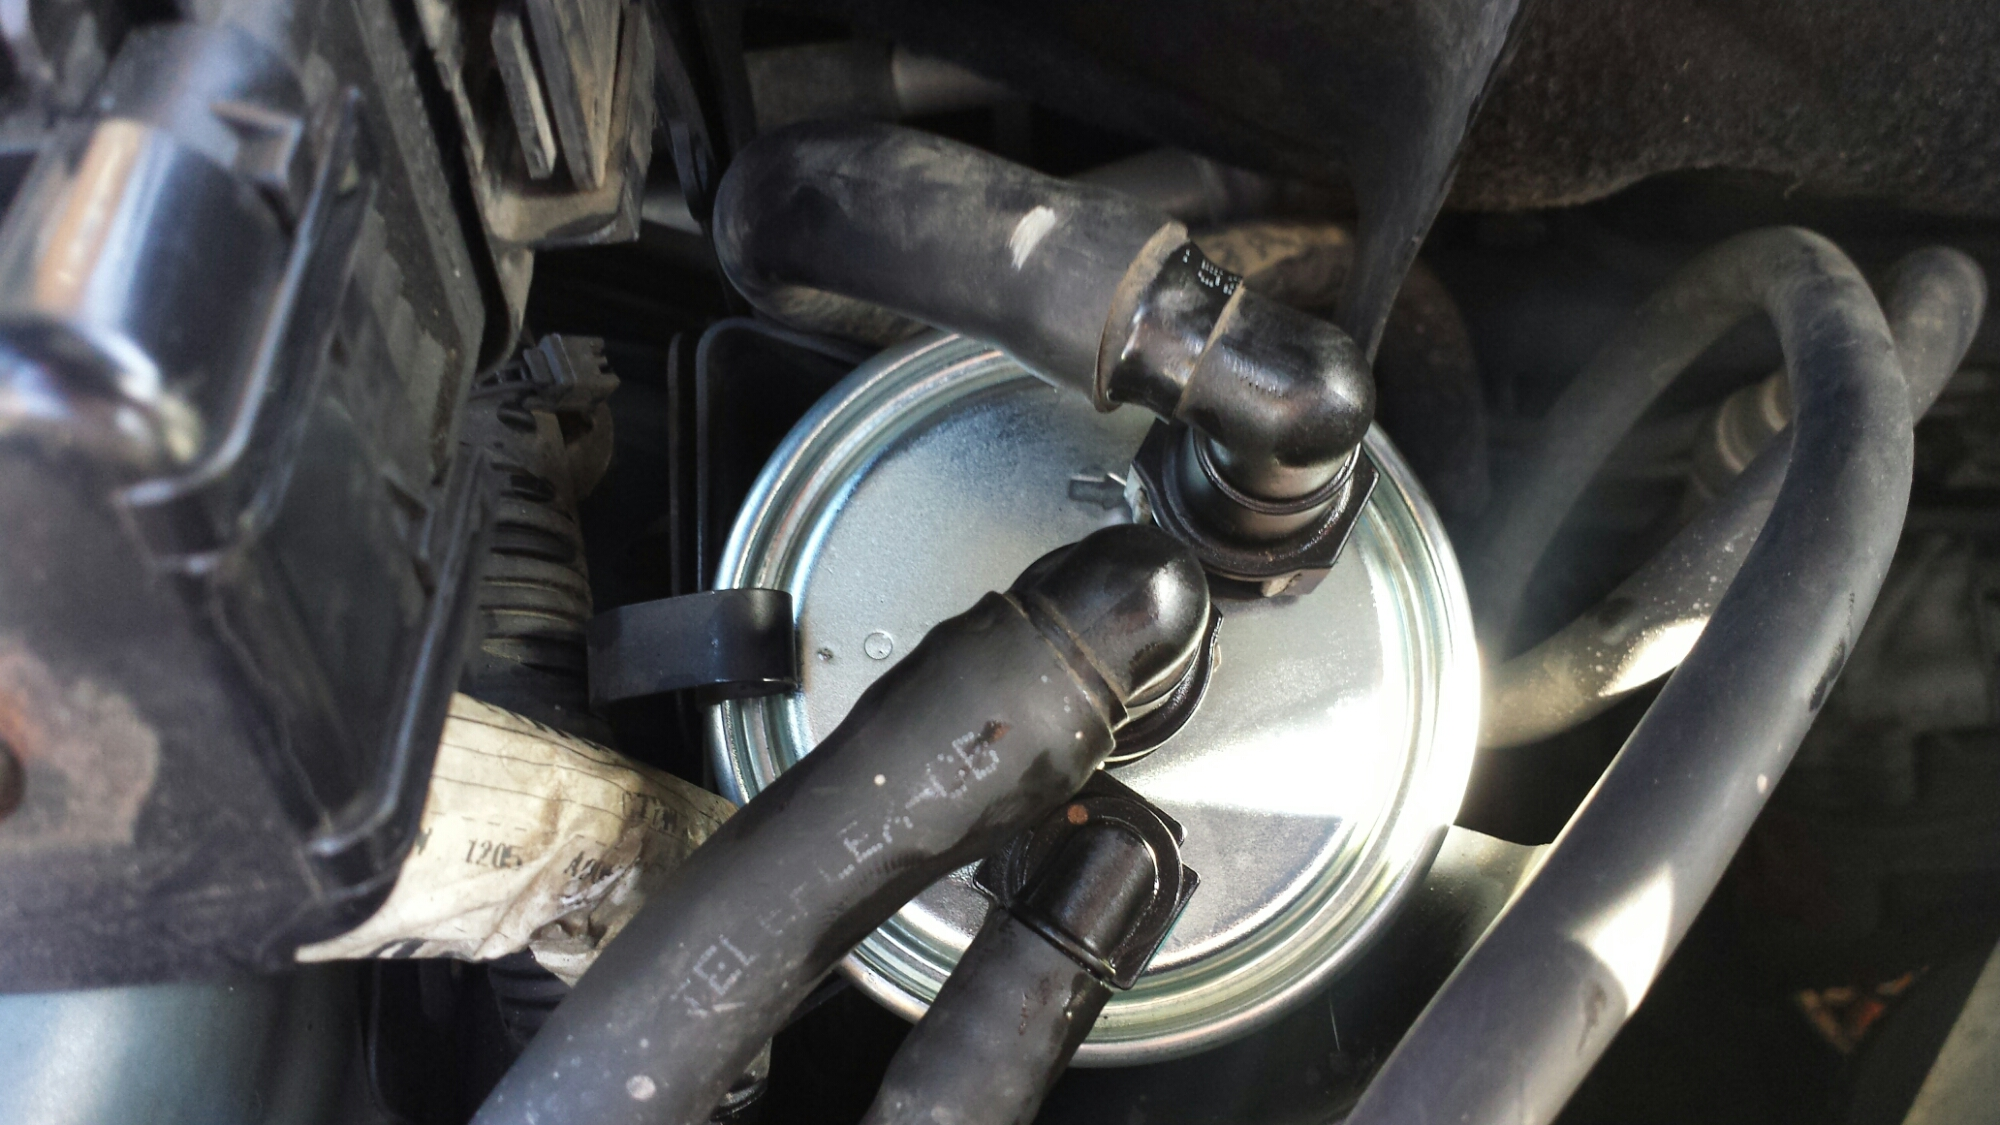 Jaguar X Type Fuel Filter Changed Now Engine Wont Start Solved Exhaust New Image